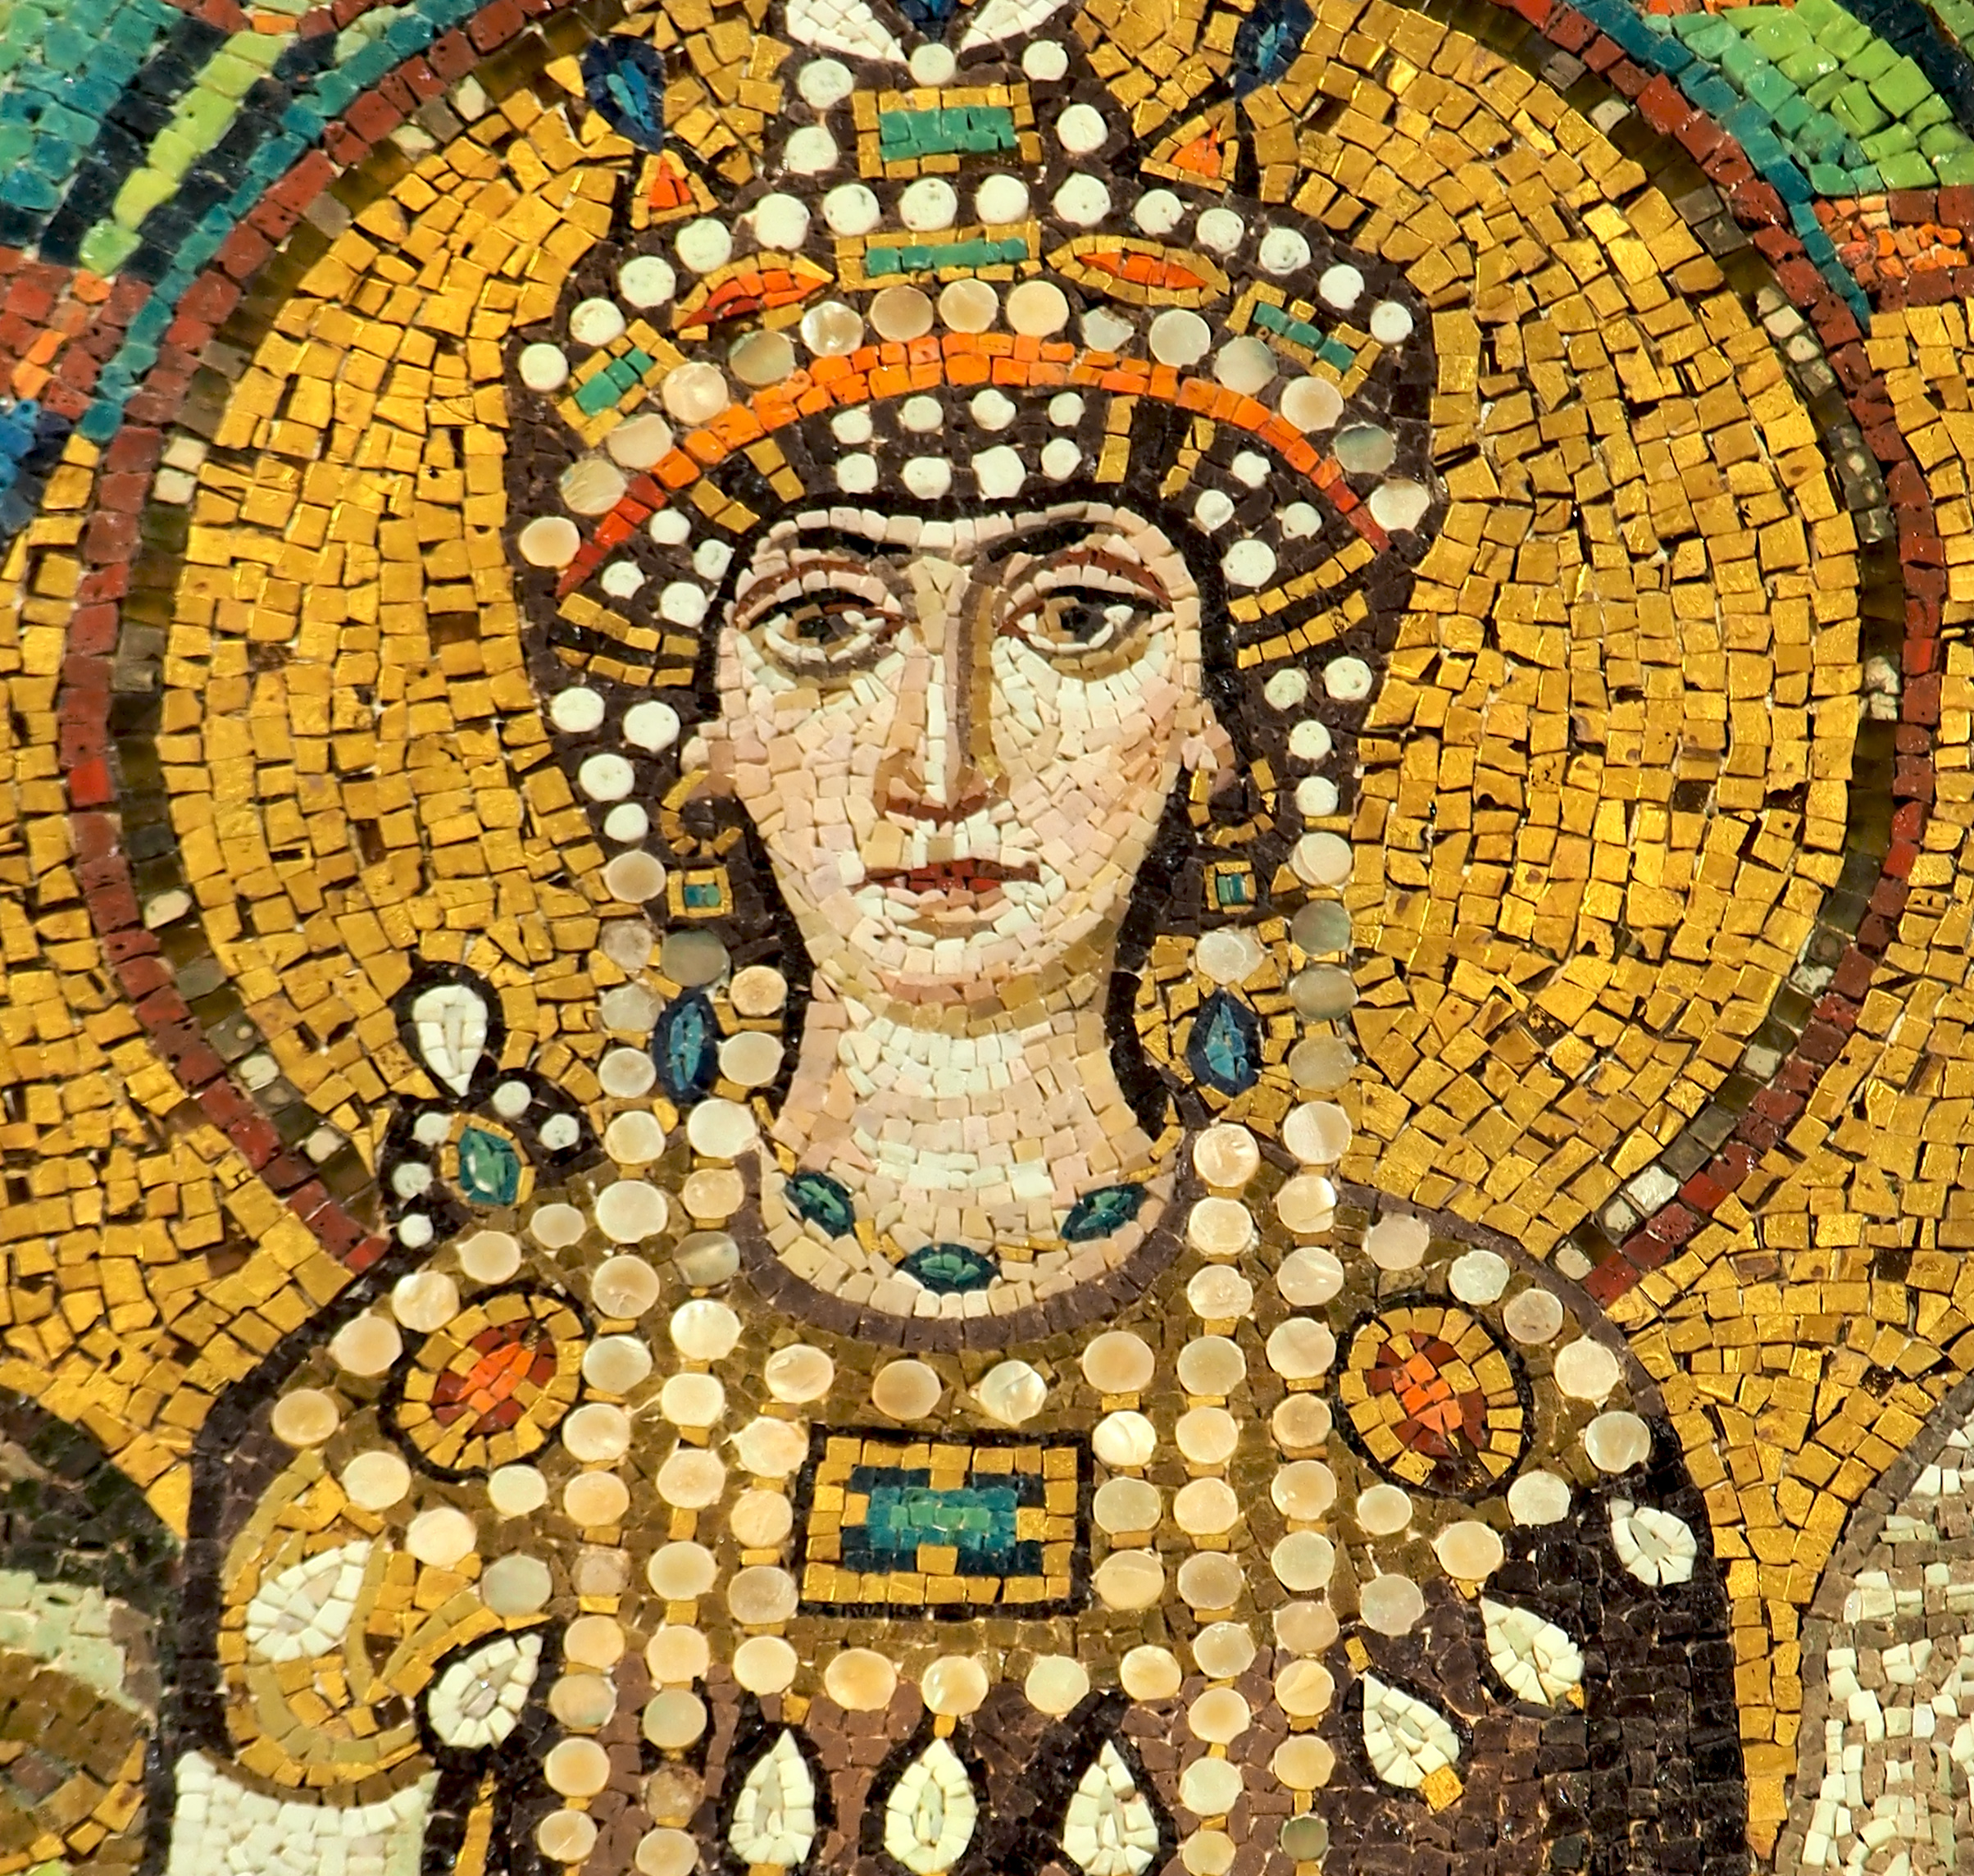 The Byzantine Empire | Anti-Social Studies: A History Podcast + Blog Source: photo by Petar Milošević [CC BY-SA 4.0 (https://creativecommons.org/licenses/by-sa/4.0)], from Wikimedia Commons